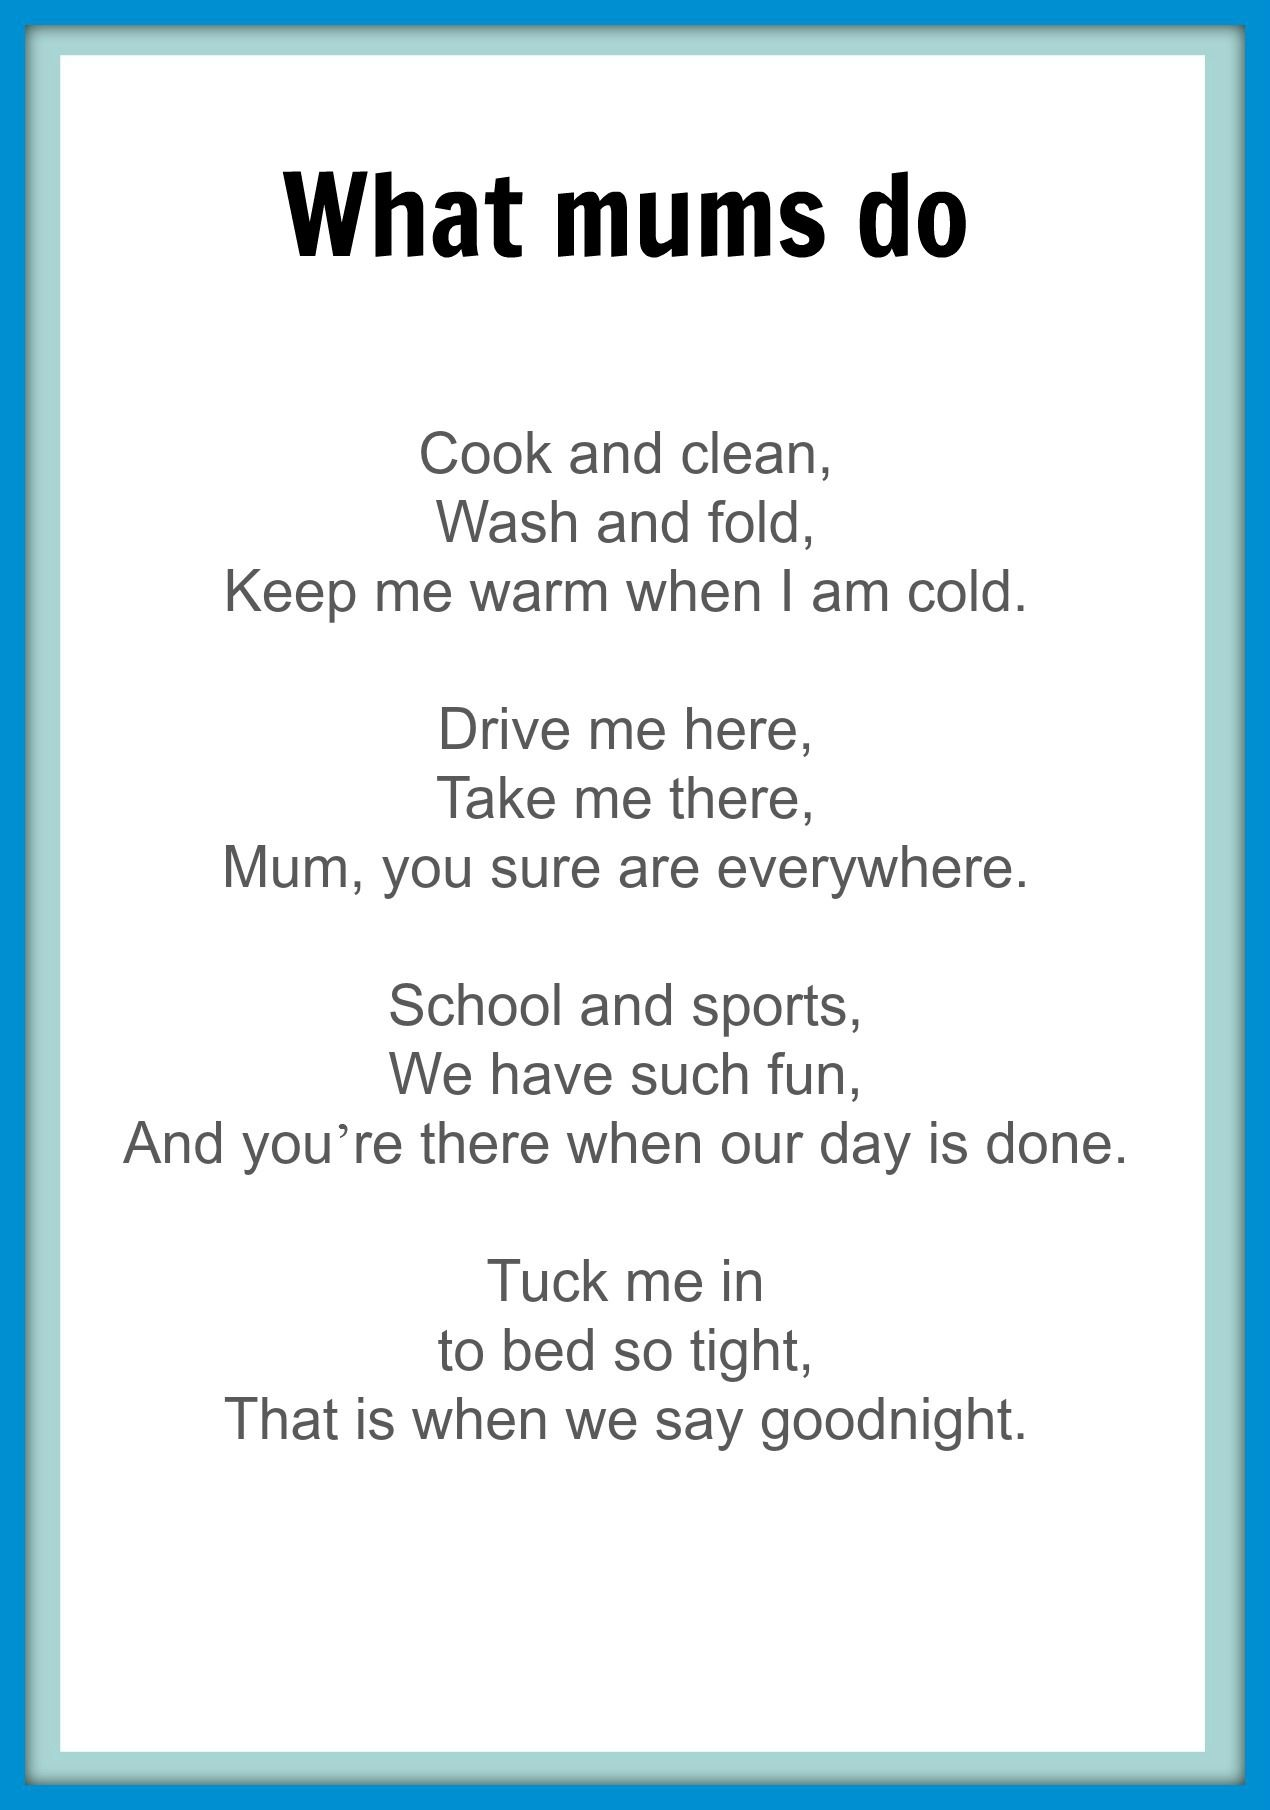 poems for mothers day from preschoolers - Google Search